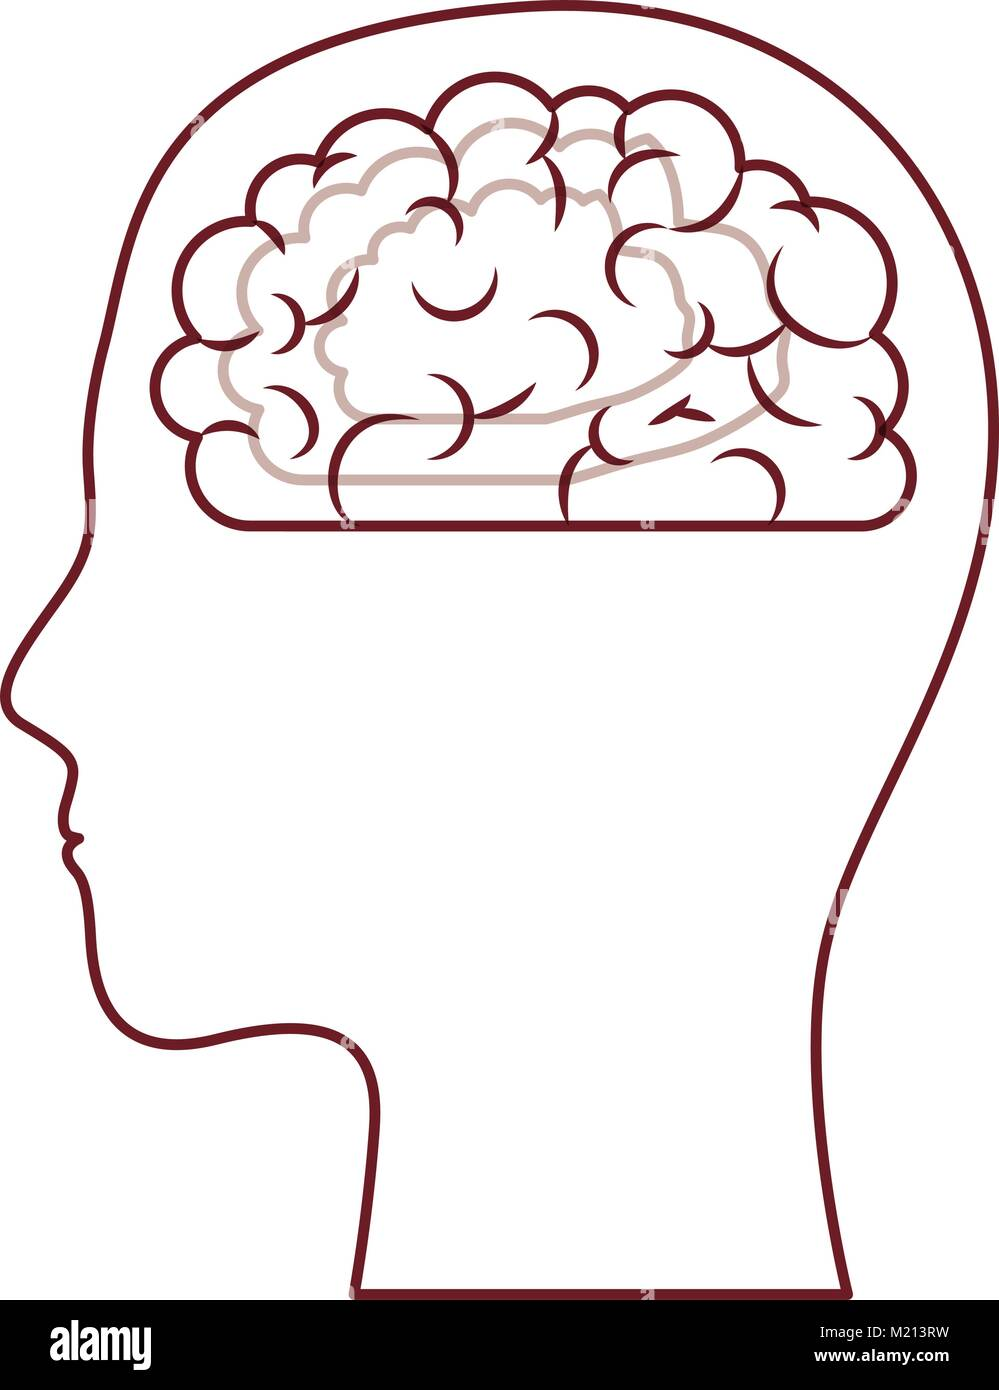 hight resolution of human face brown silhouette with brain inside in dark red contour